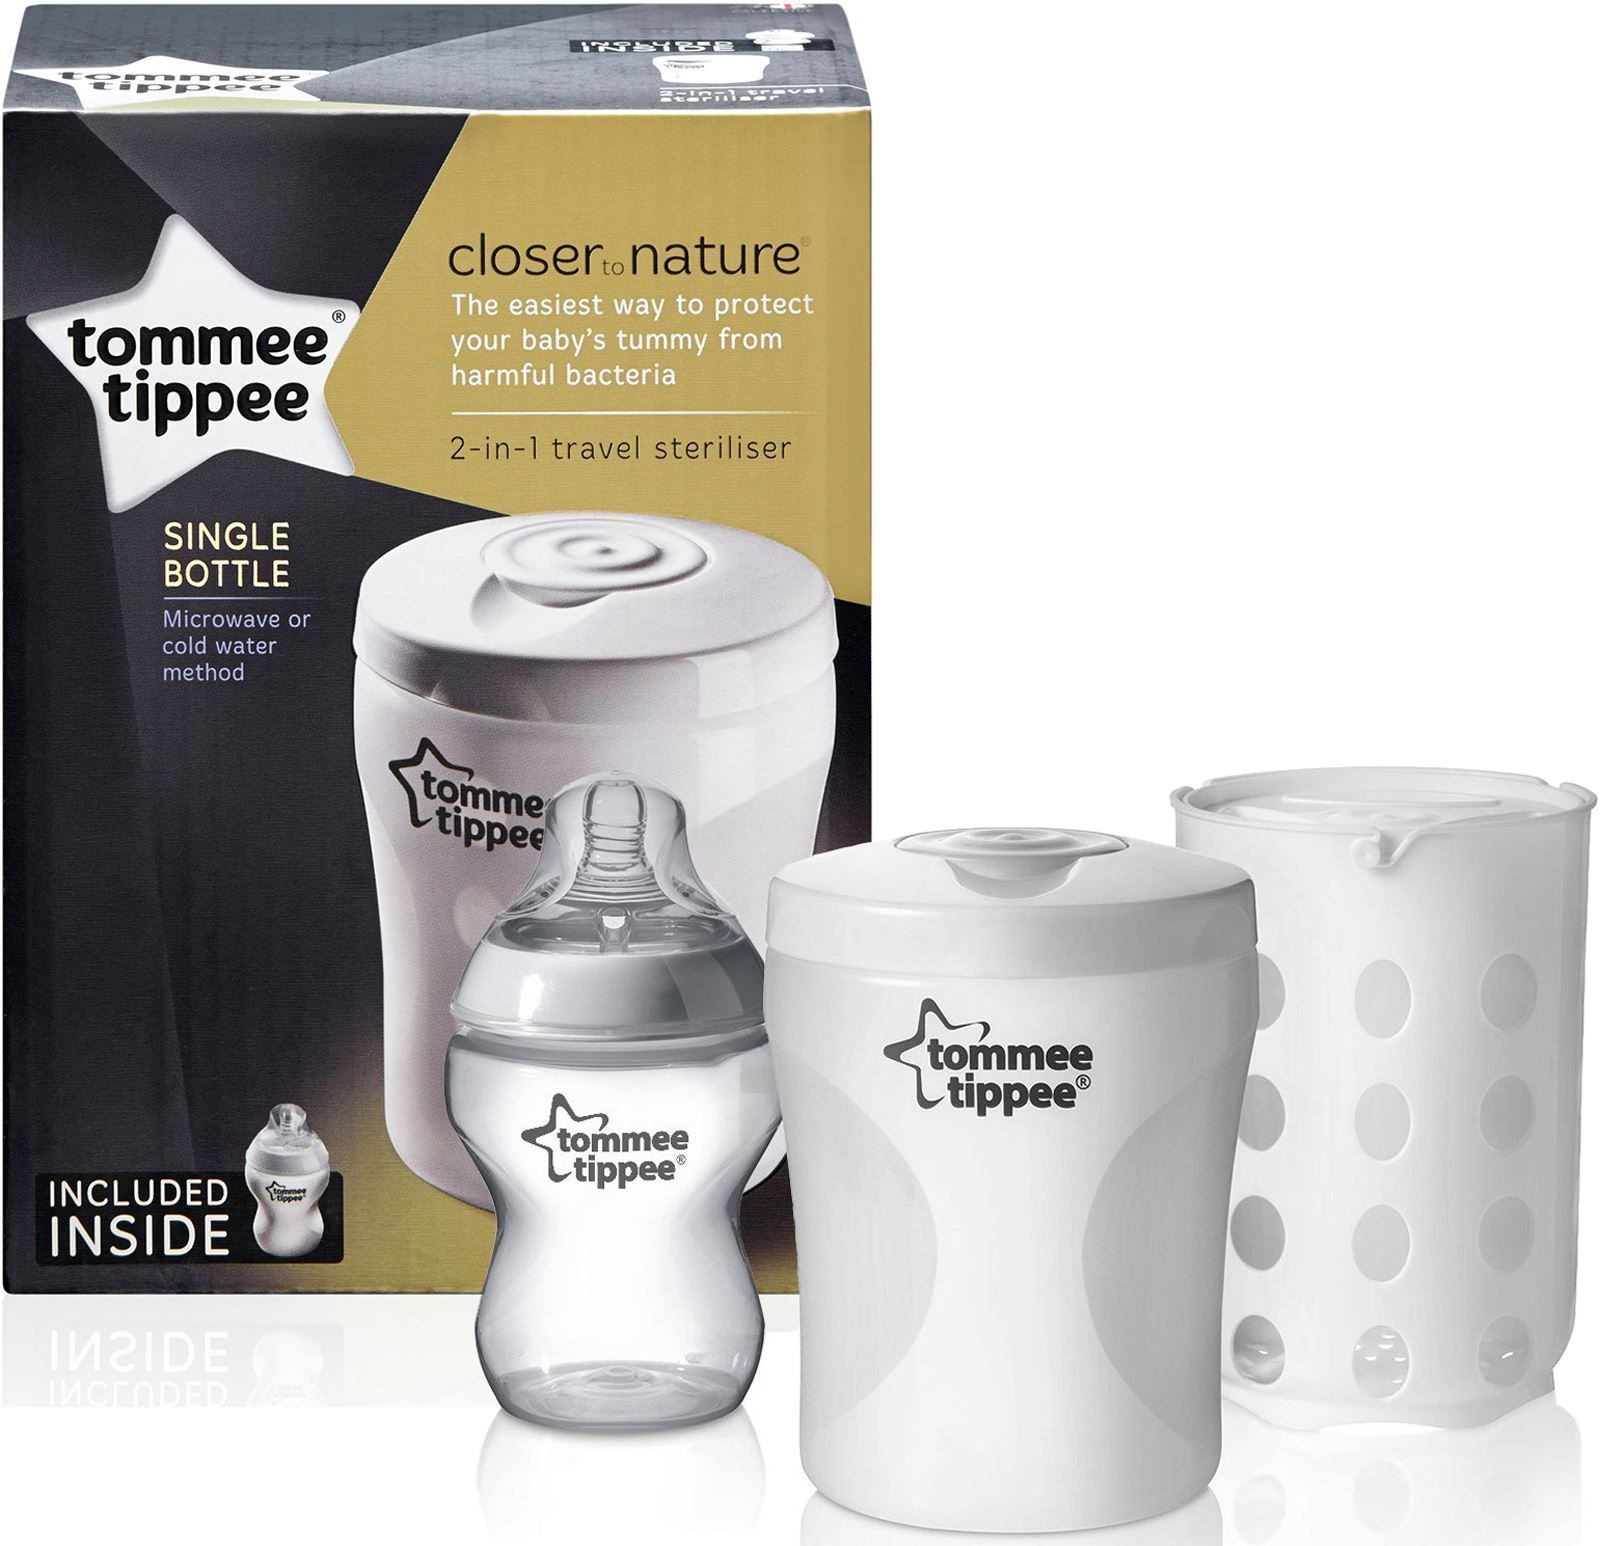 Стерилизатор Tommee Tippee - Closer to Nature, за едно шише - 2